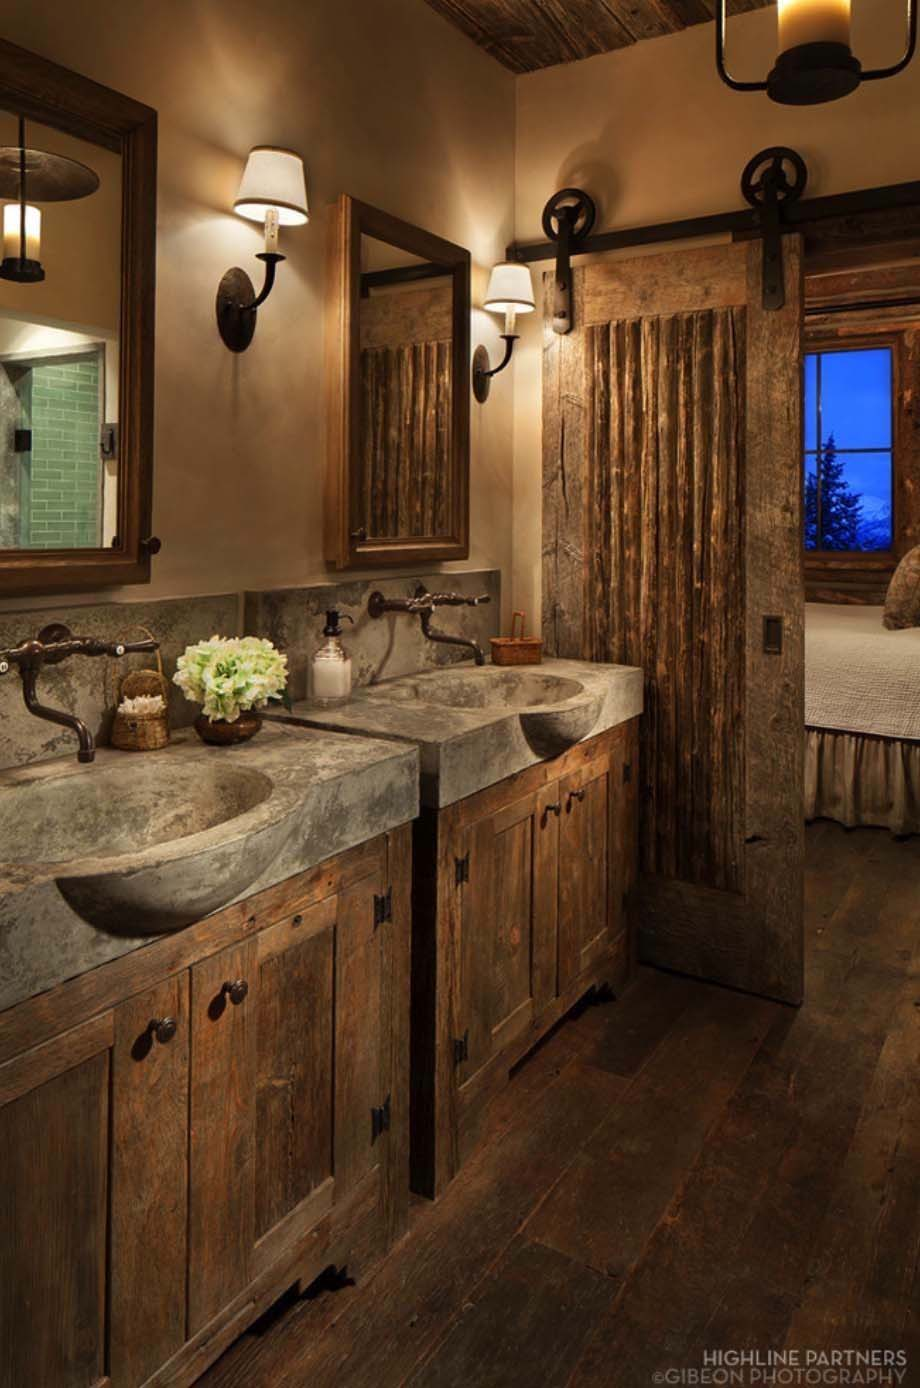 Inspiring Rustic Bathroom Decor Ideas For Cozy Home Style Motivation